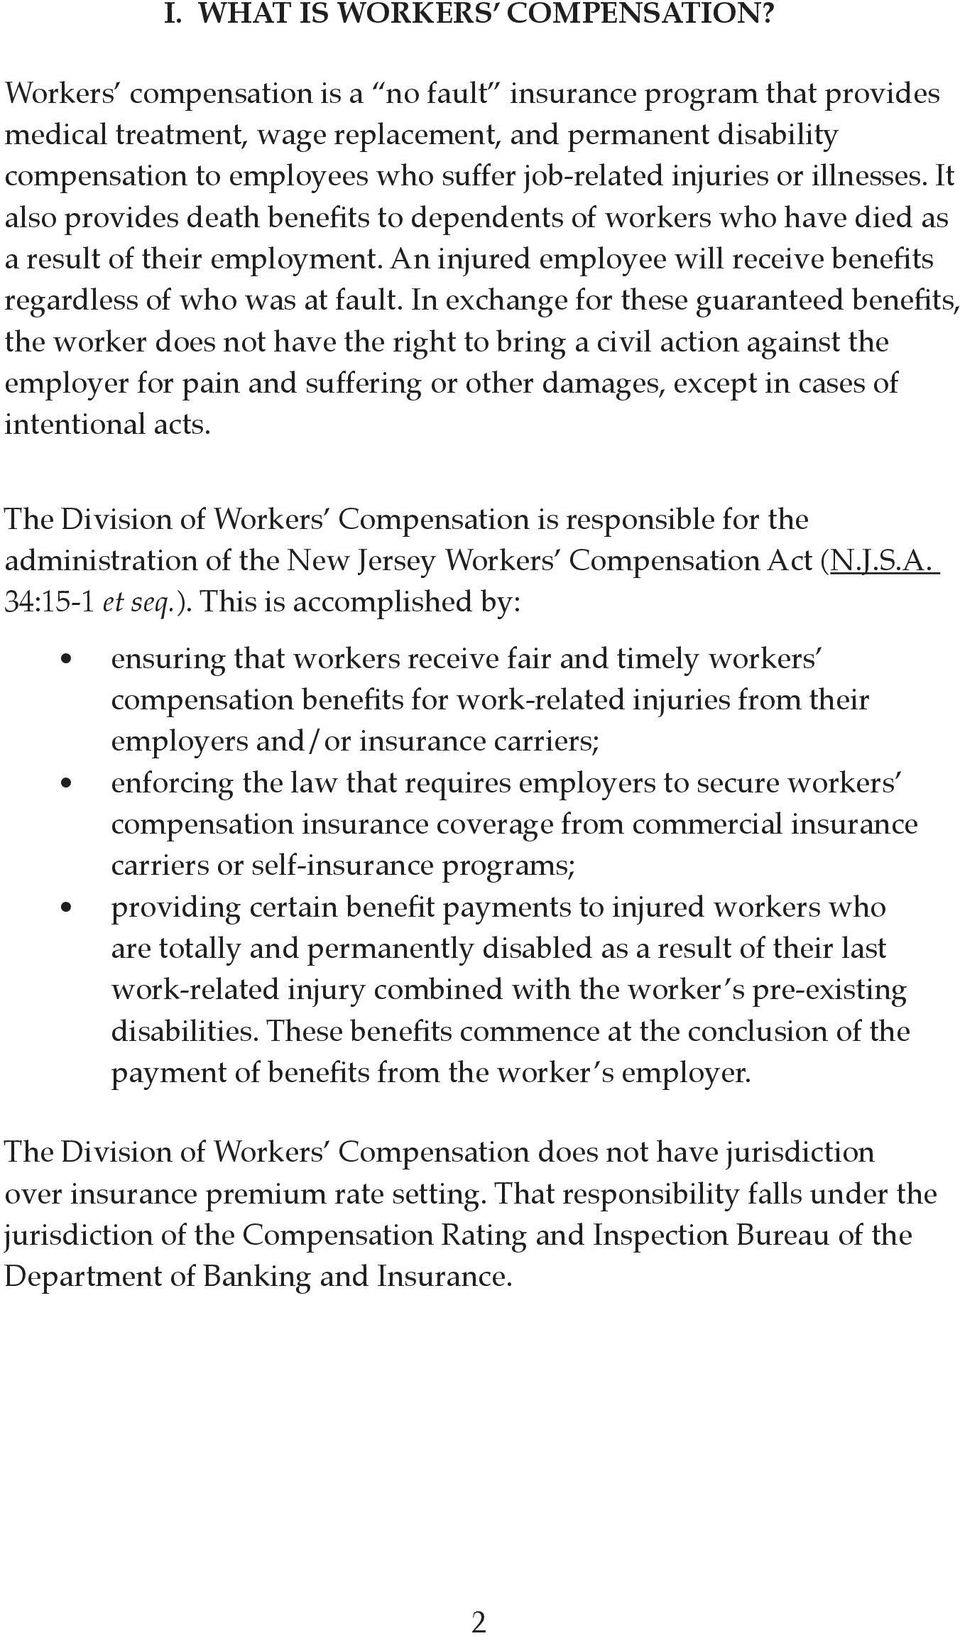 It also provides death benefits to dependents of workers who have died as a result of their employment. An injured employee will receive benefits regardless of who was at fault.